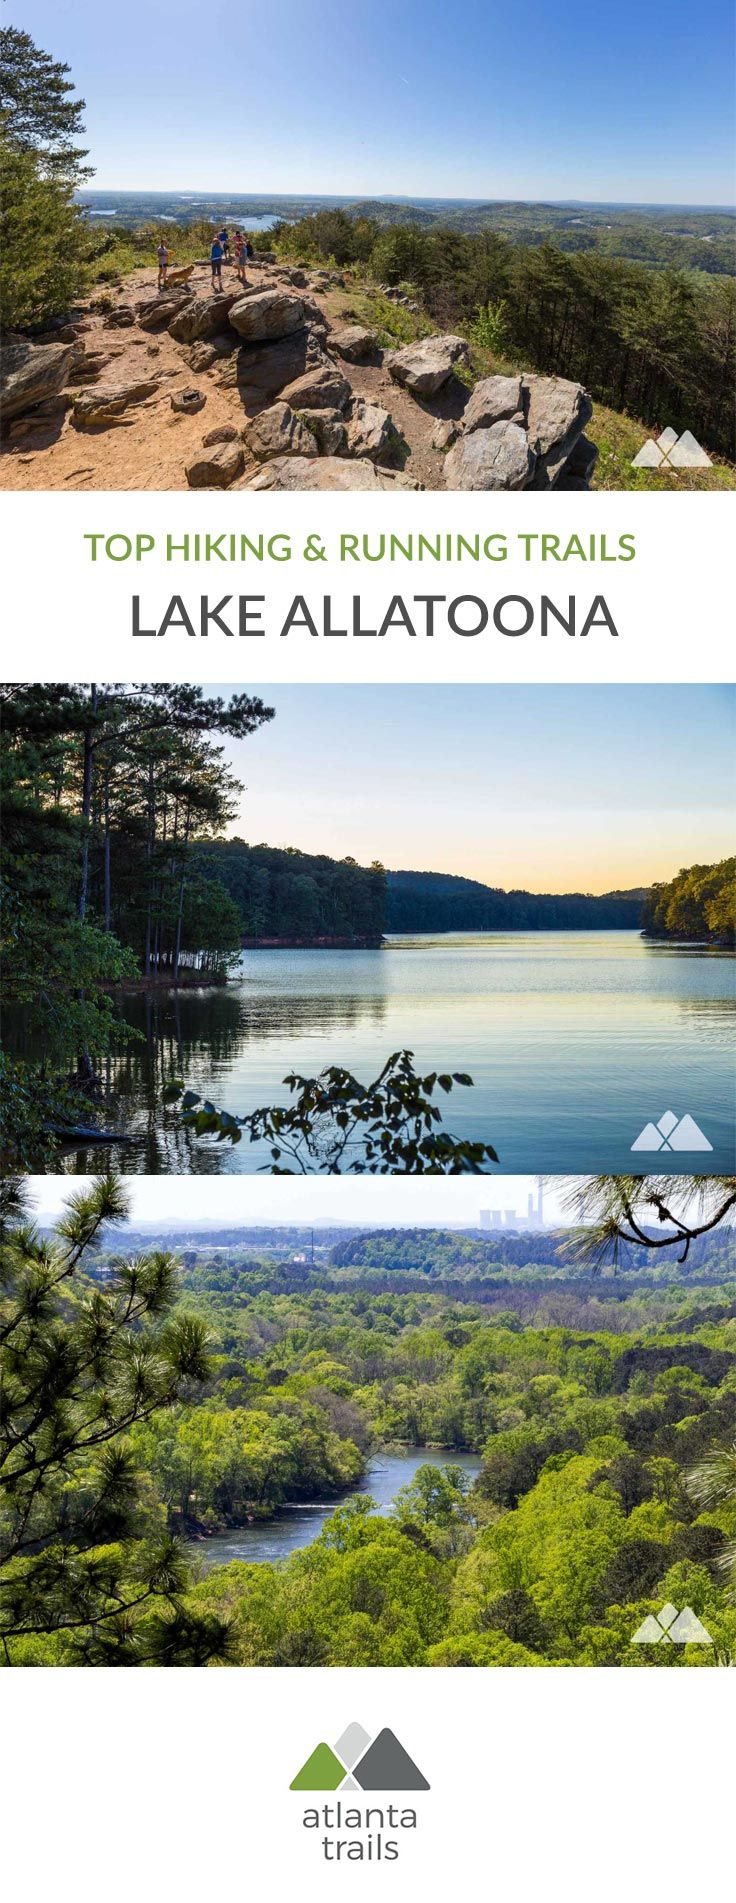 Find an outdoor adventure near Lake Allatoona! Hike to gorgeous Allatoona vistas from the lake's meandering shore. Catch stunning views of the Atlanta skyline from a nearby mountaintop. Or climb to beautiful views of the Etowah River valley.